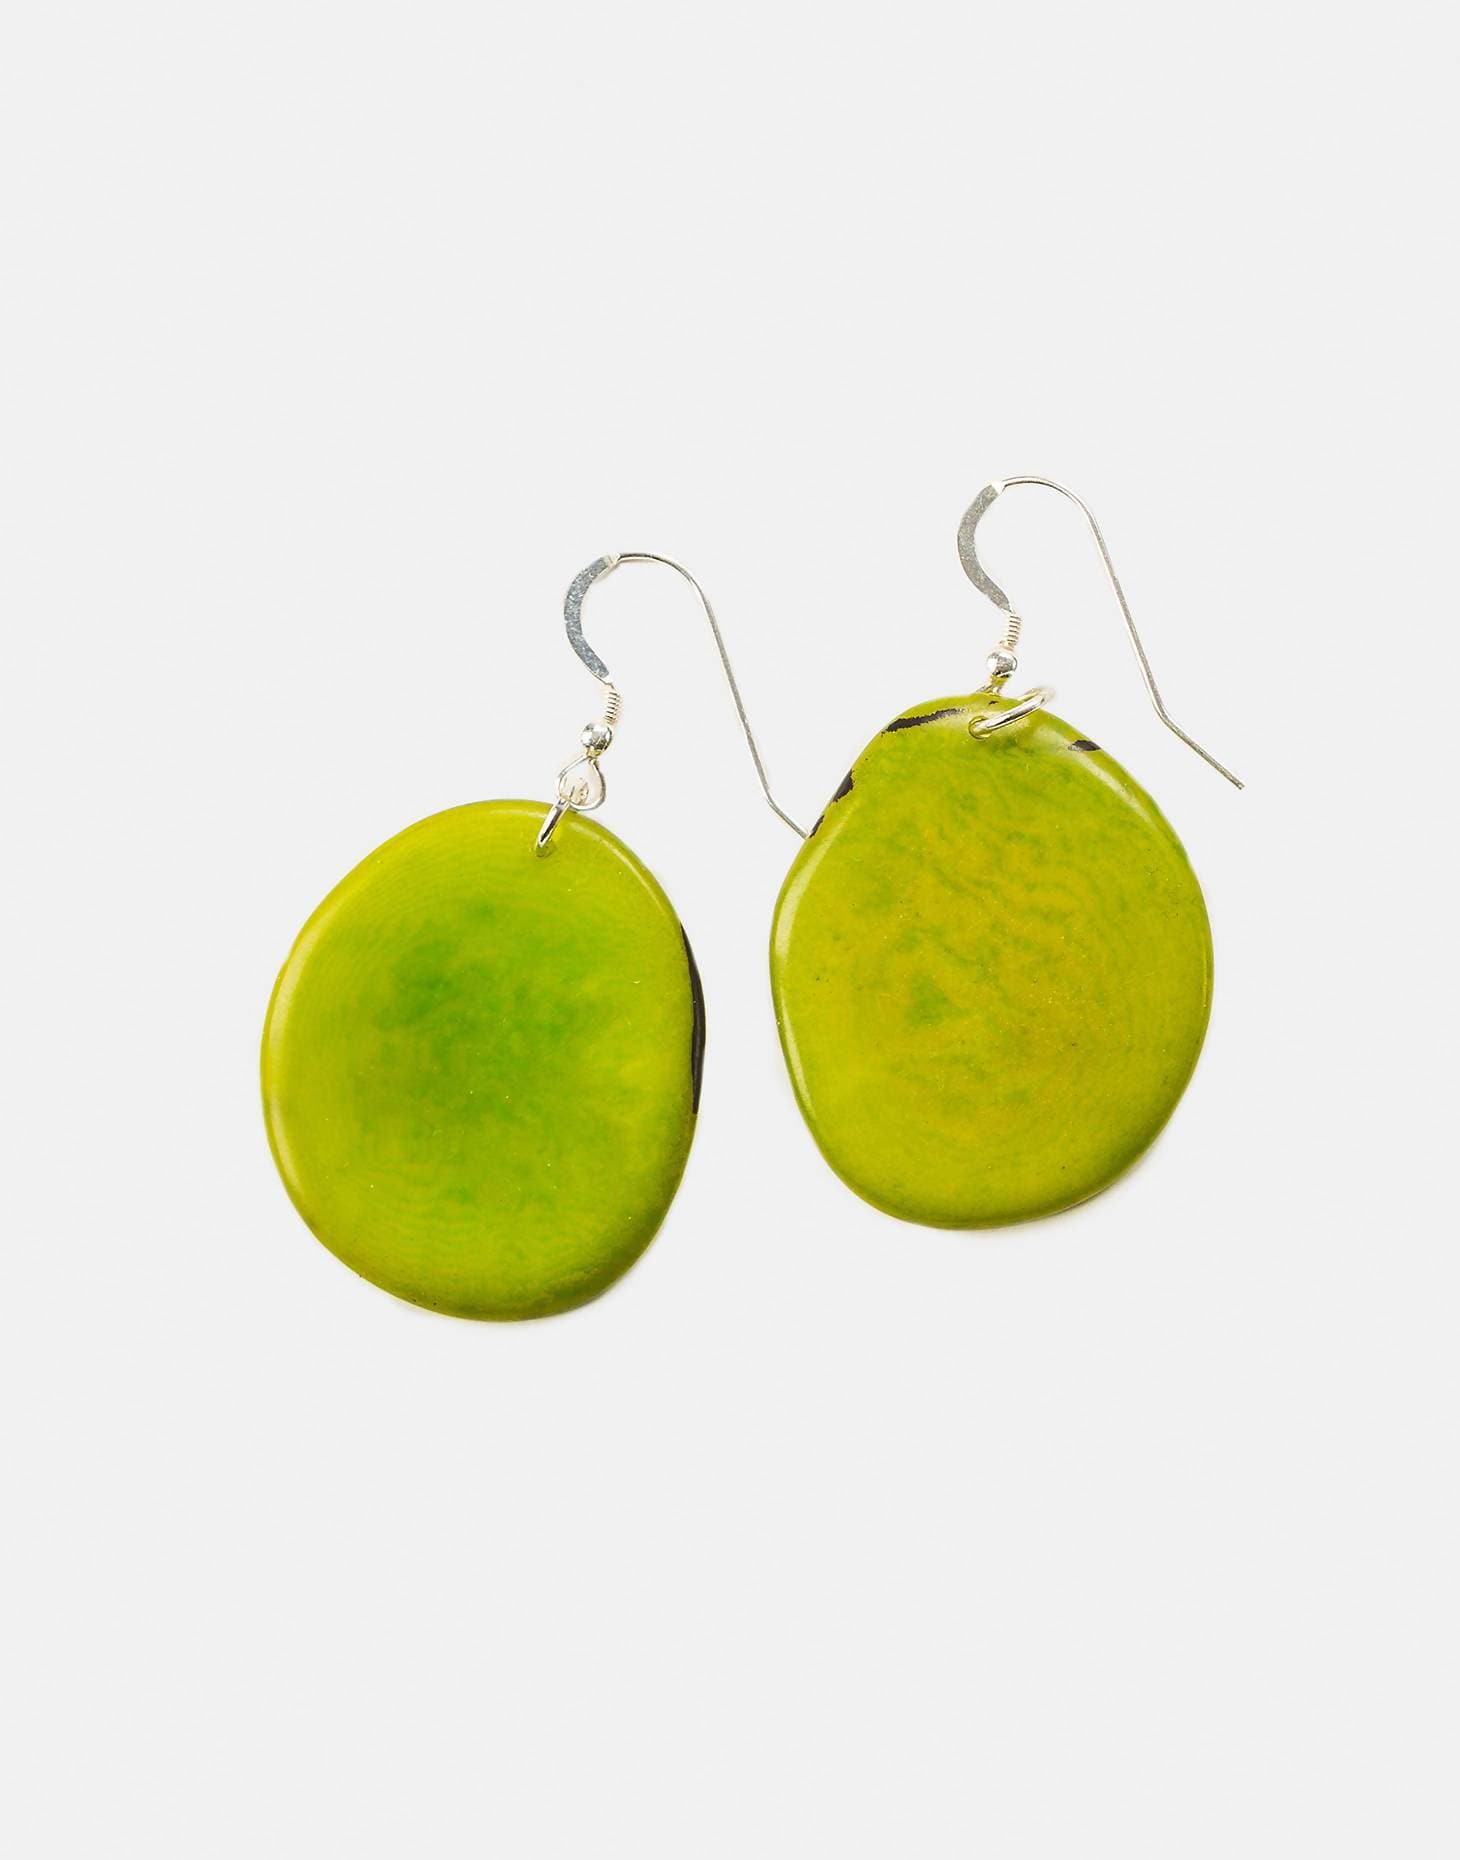 Handmade Tagua Nut Folha Slice Earring with Sterling Silver Hooks